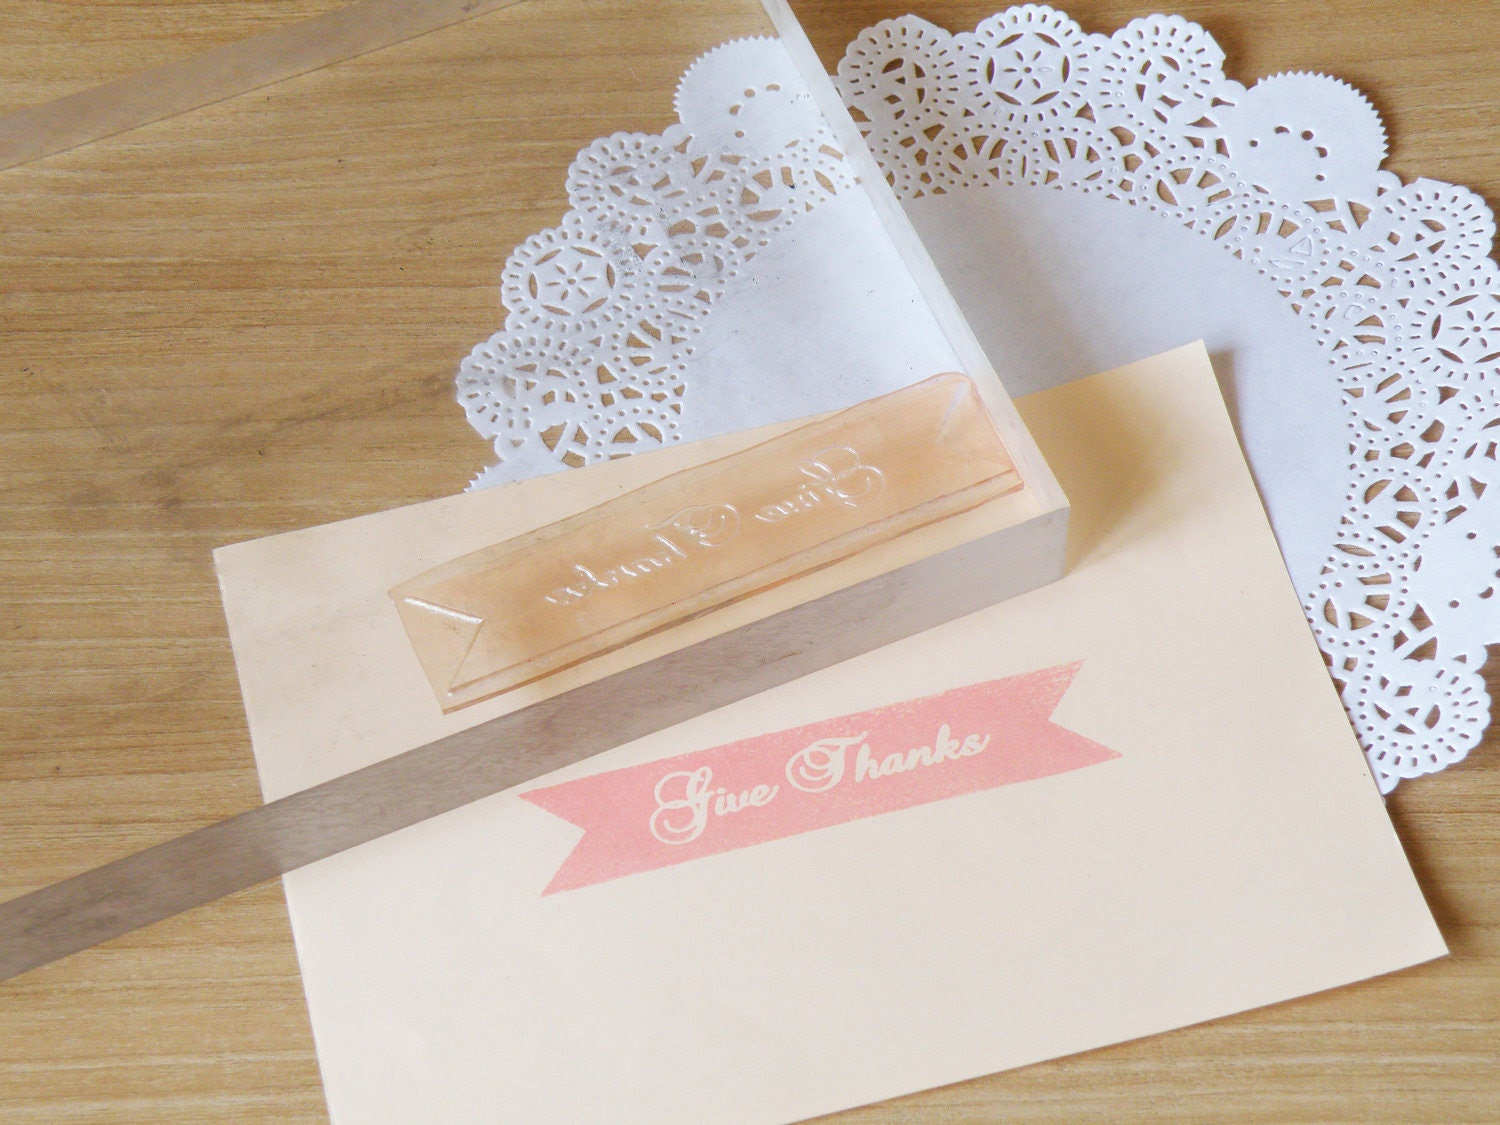 Give Thanks Clear Polymer Stamp